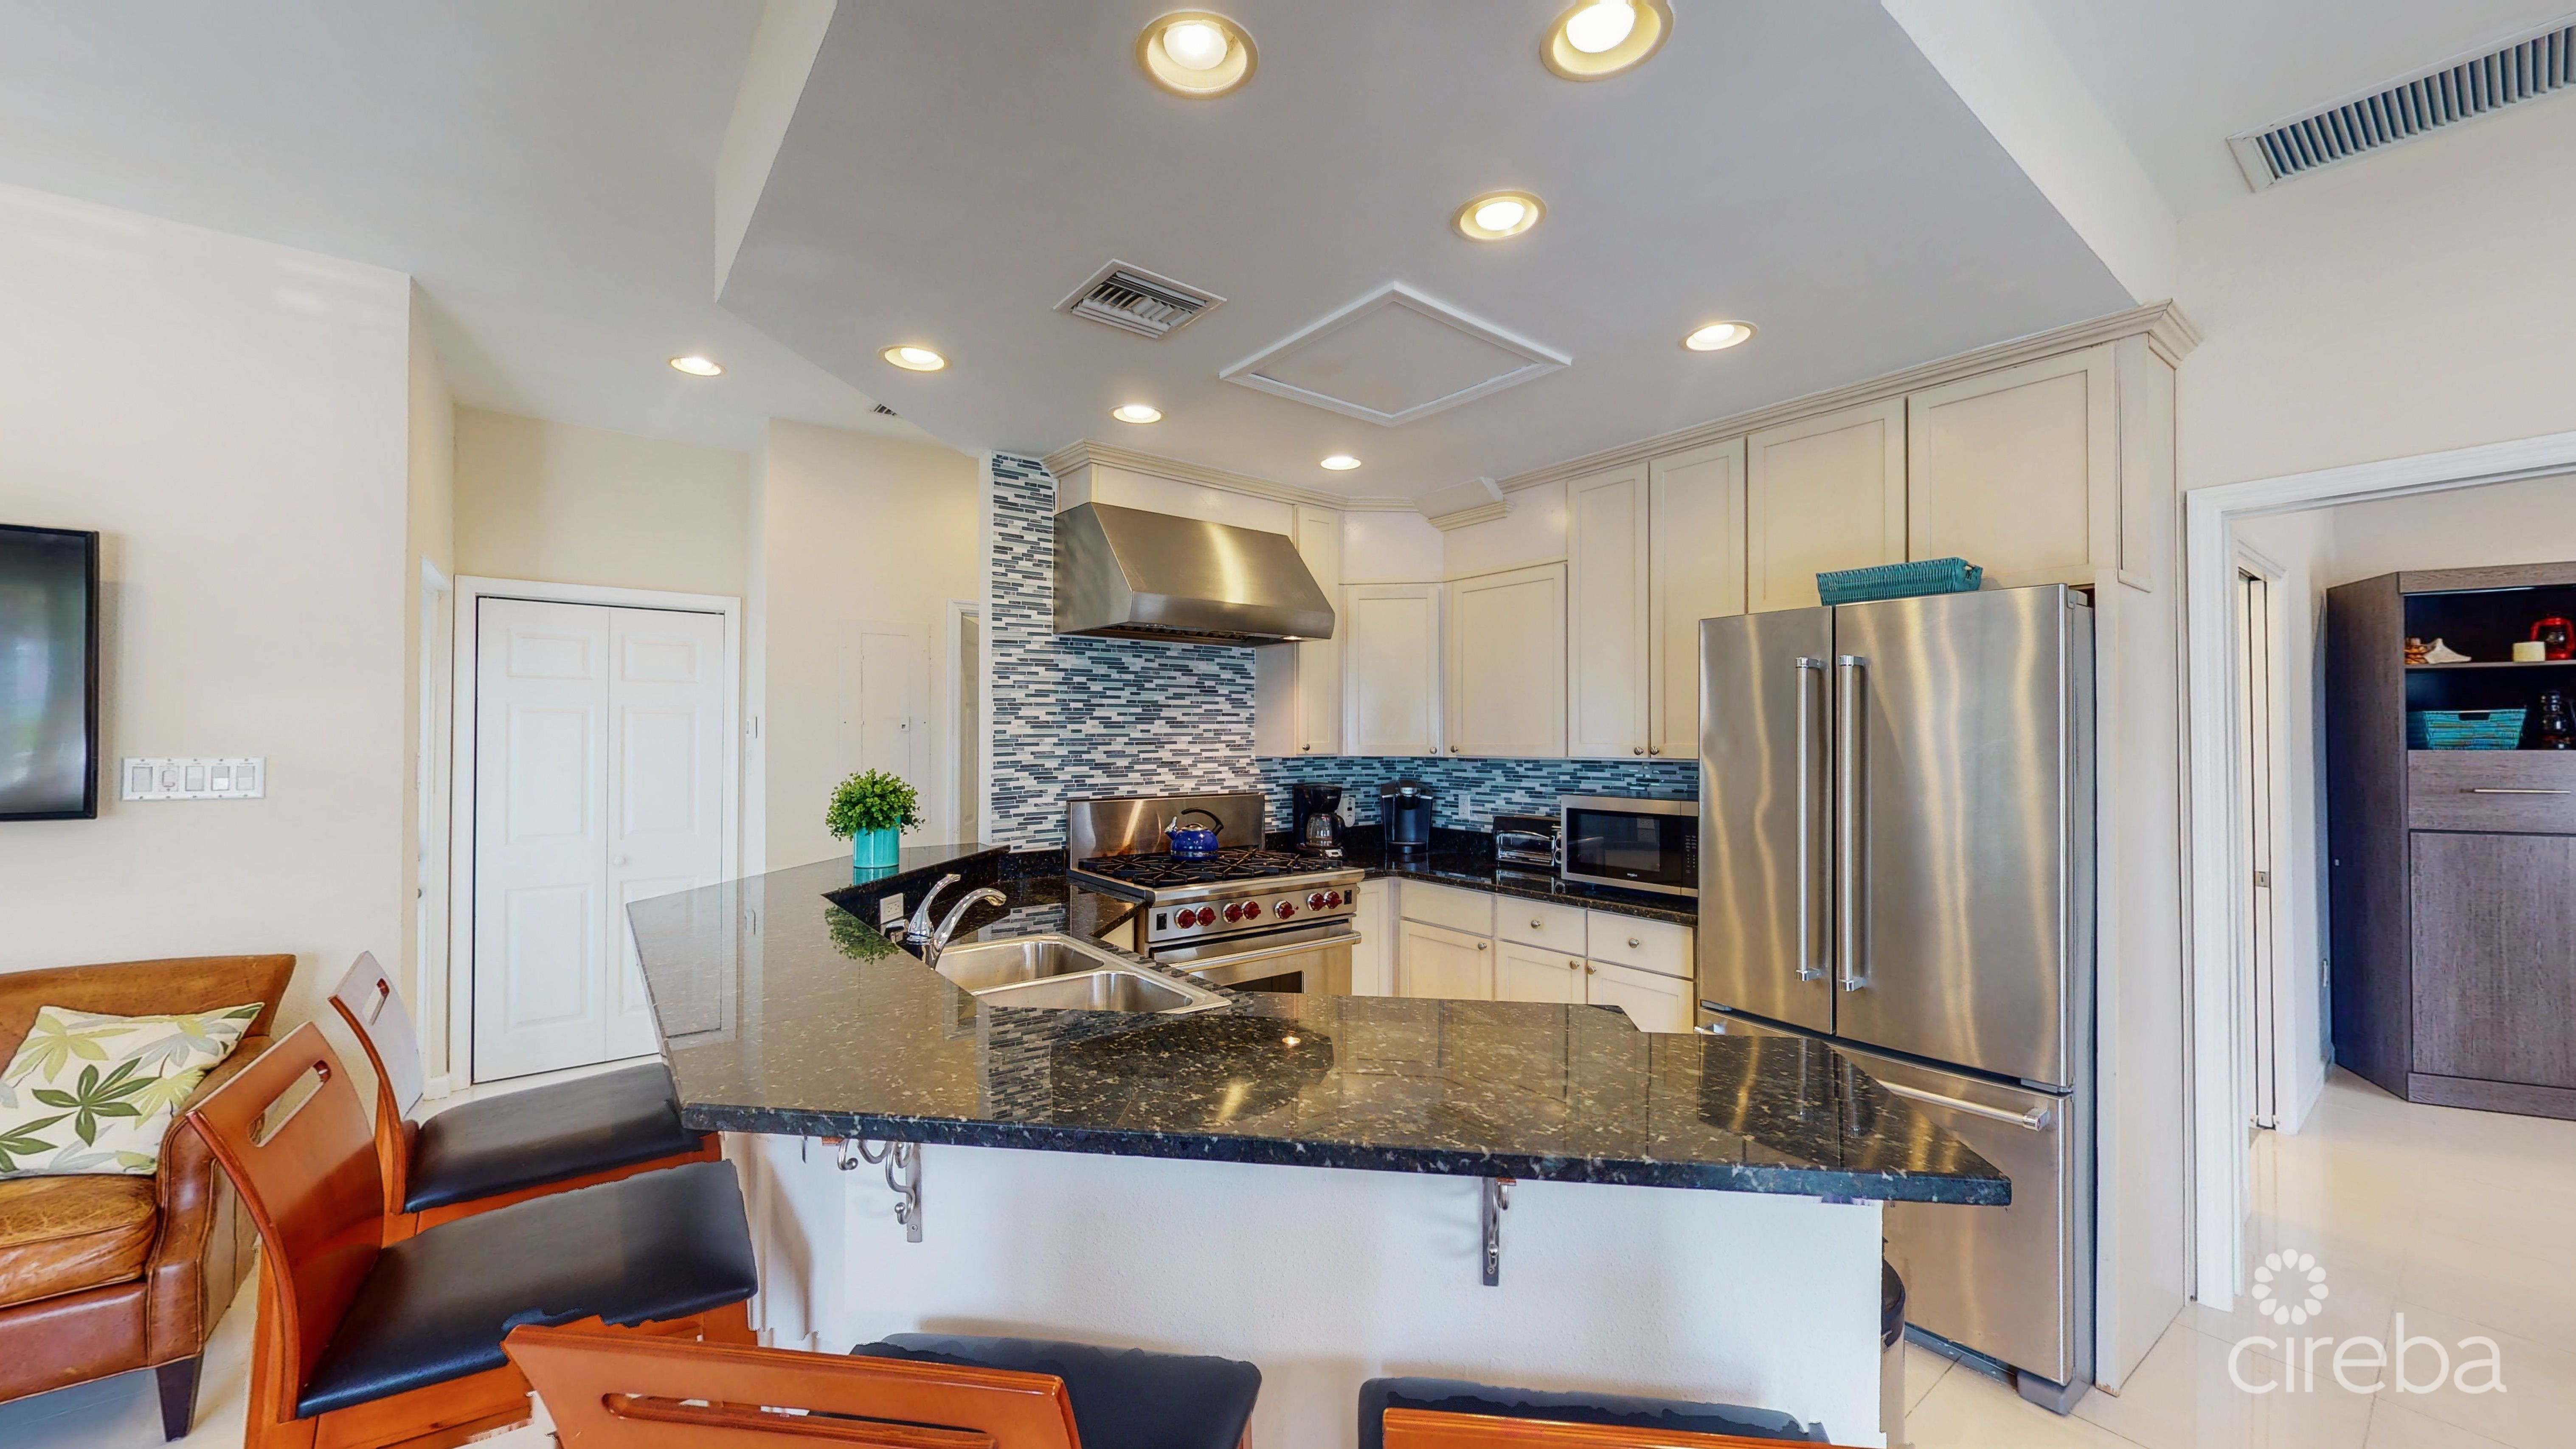 Eat in bar around the kitchen. Perfect for cooking and enjoying family time.